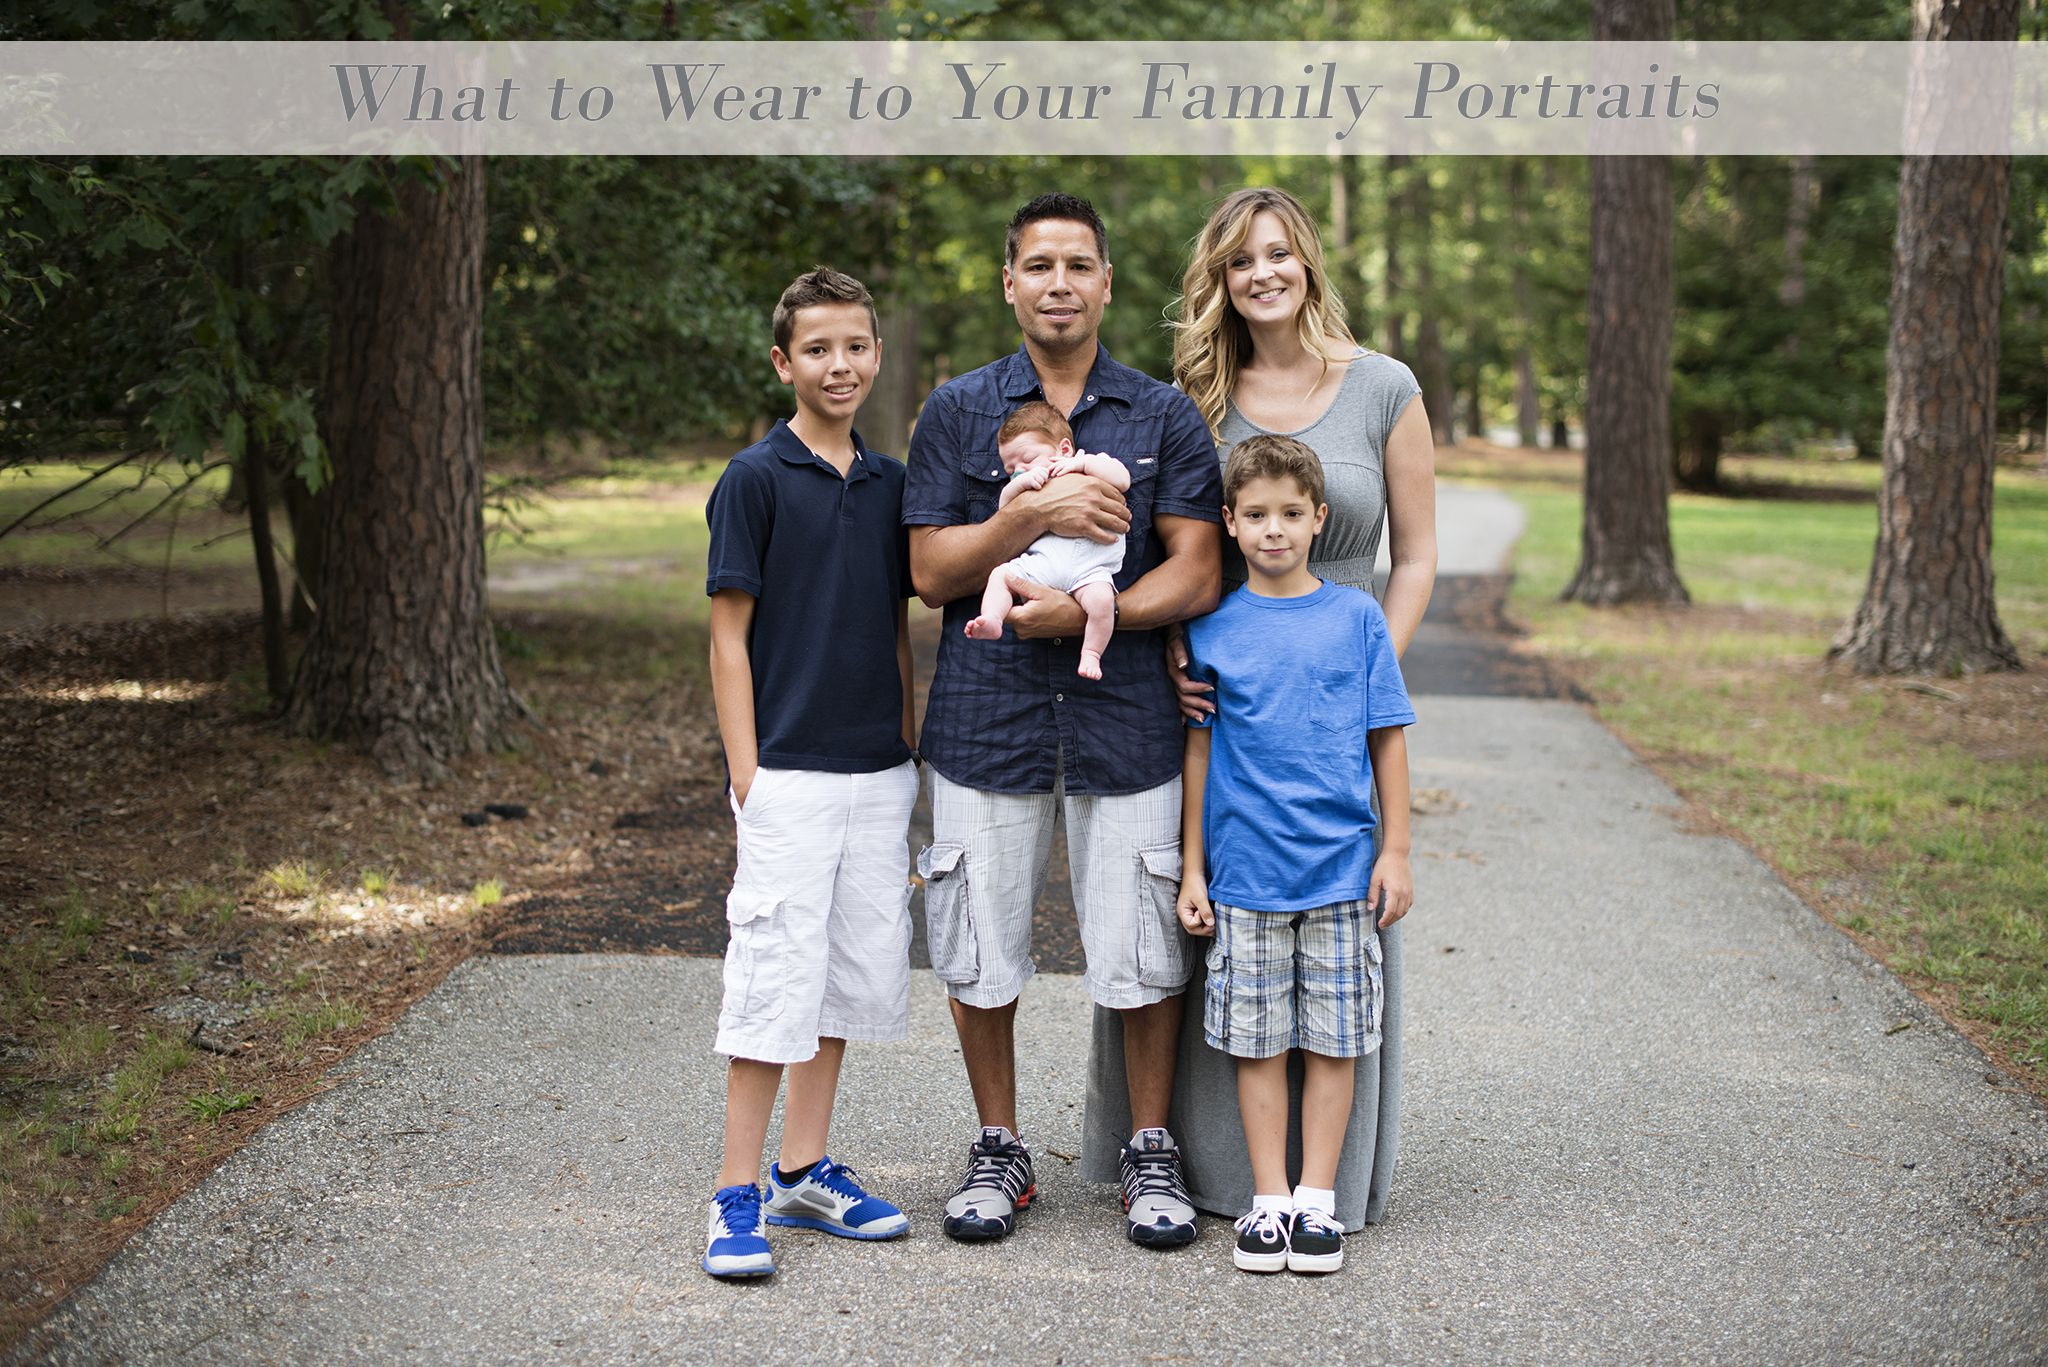 What to Wear: A guide to make your family pictures stand out